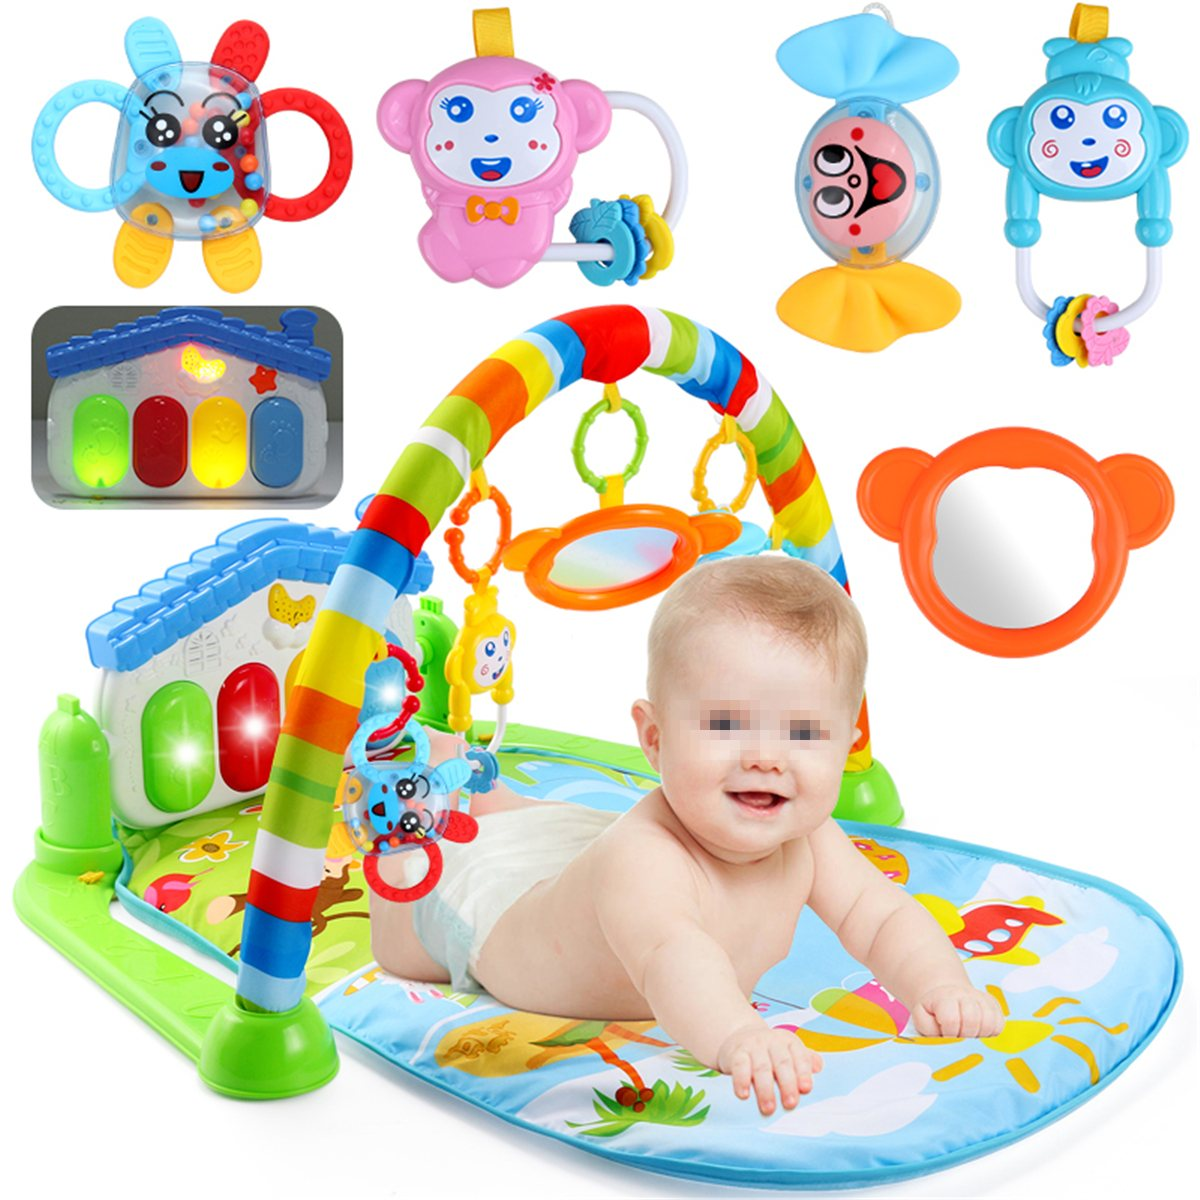 How To Play Newborn On Piano Us 29 75 7 Off New 3 In 1 Newborn Baby Multifunction Play Mat Music Piano Fitness Gym Play Activity Mats For Kids Children Gift Toys In Play Mats